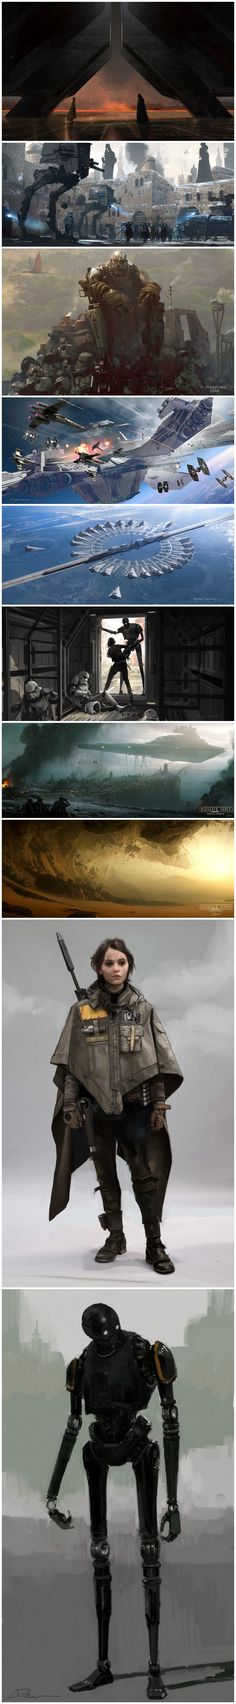 The amazing concept art for Star Wars: Rogue OneThe Art of Rogue One: A Star Wars Story